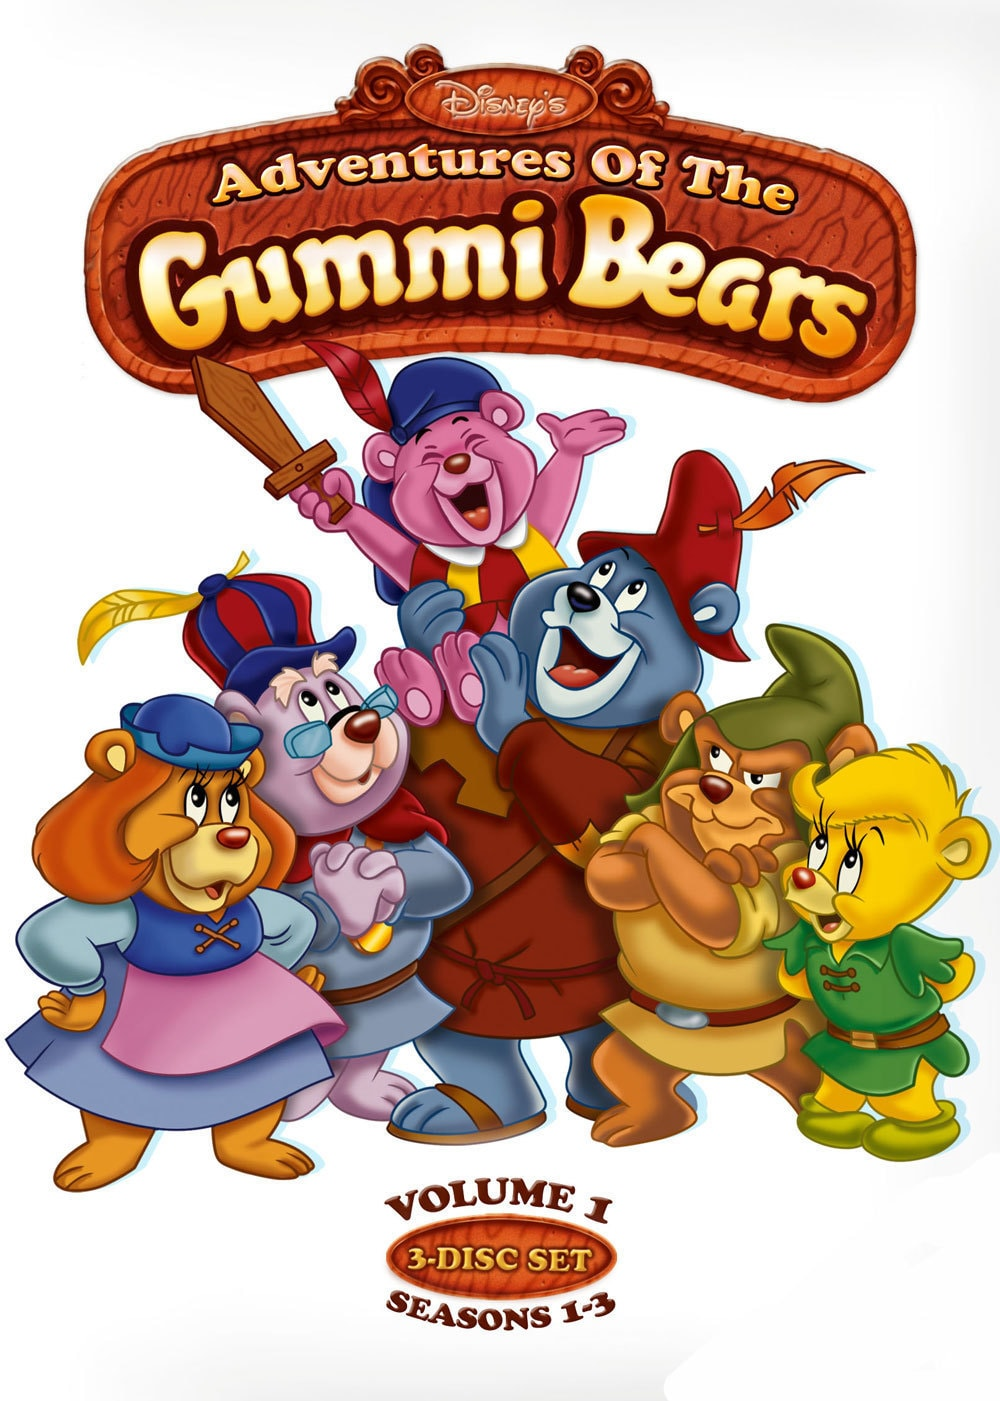 Adventures of the Gummi Bears Products